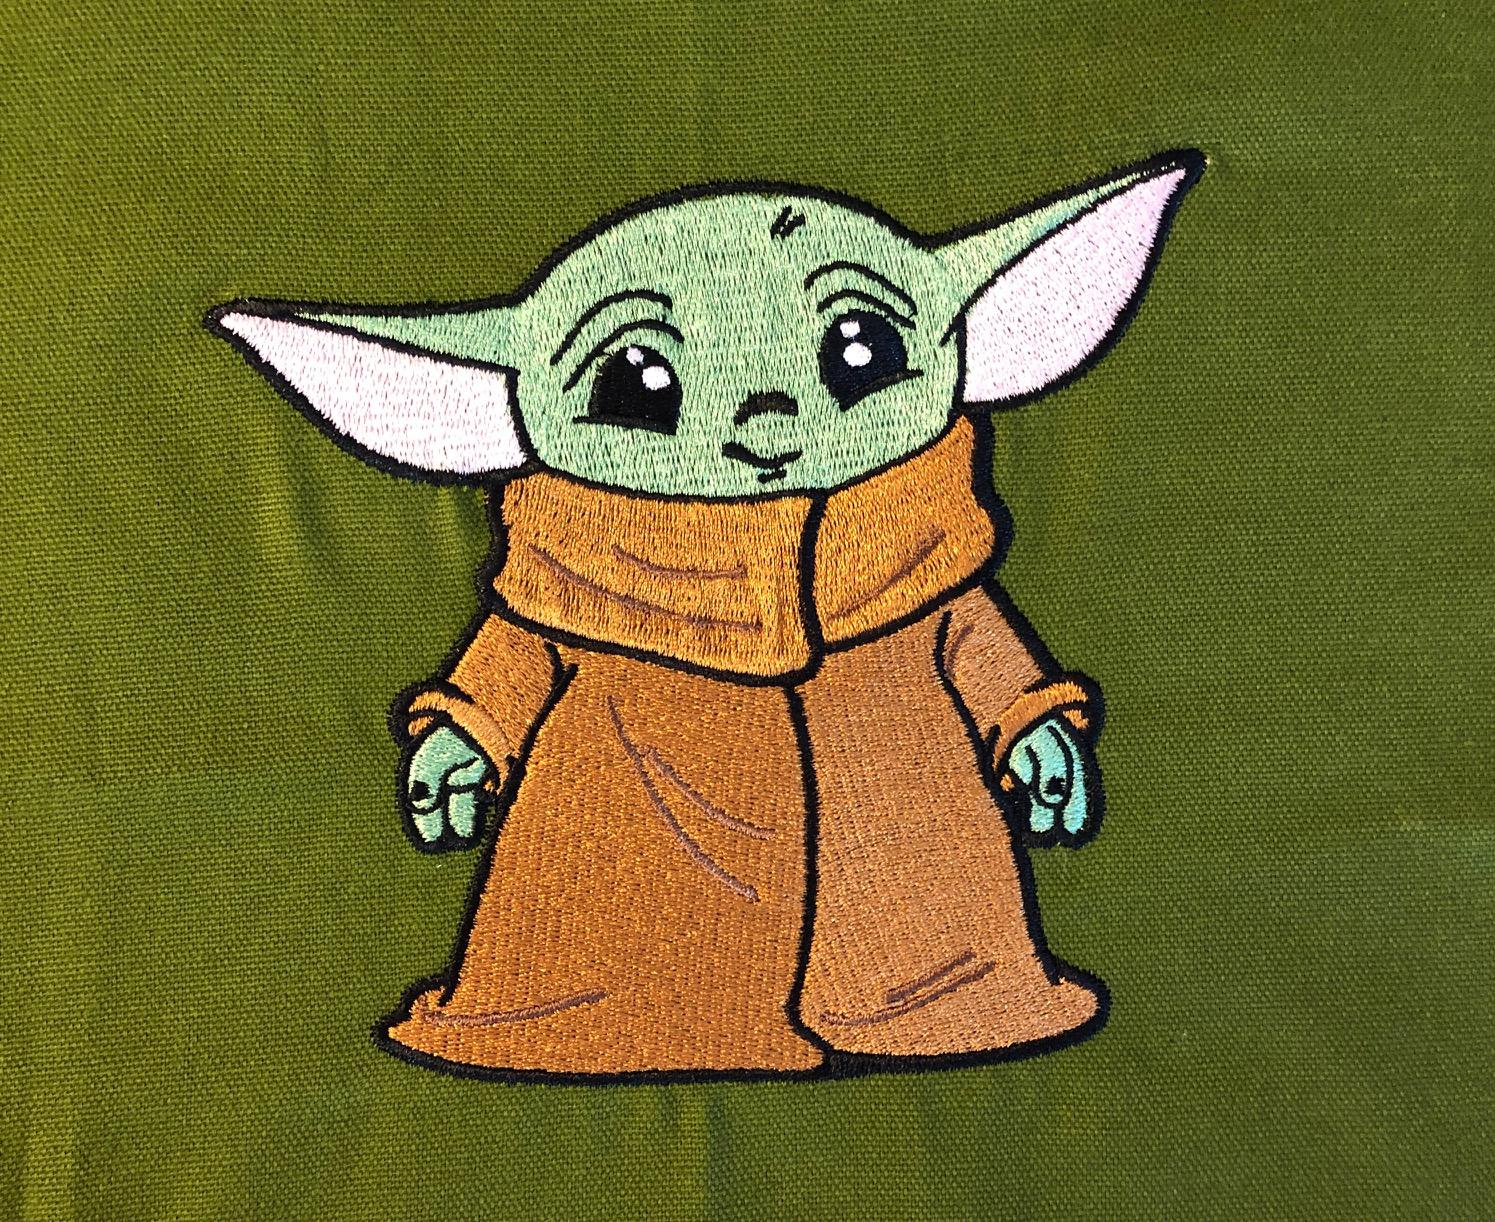 Embroidered baby yoda design